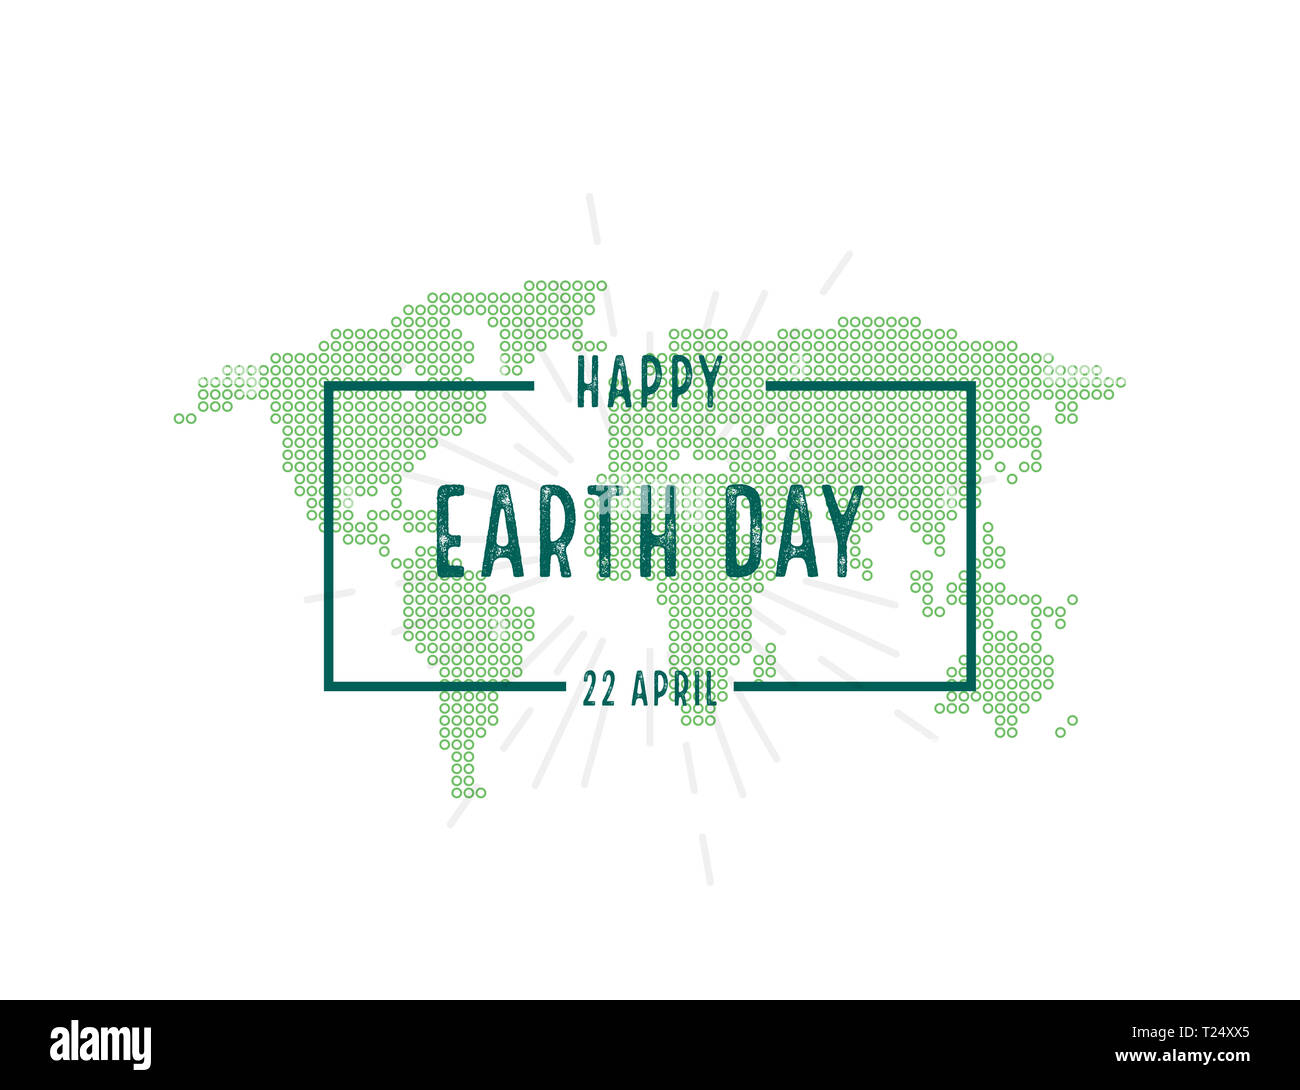 earth day illustration for happy earth day vector in flat style T24XX5